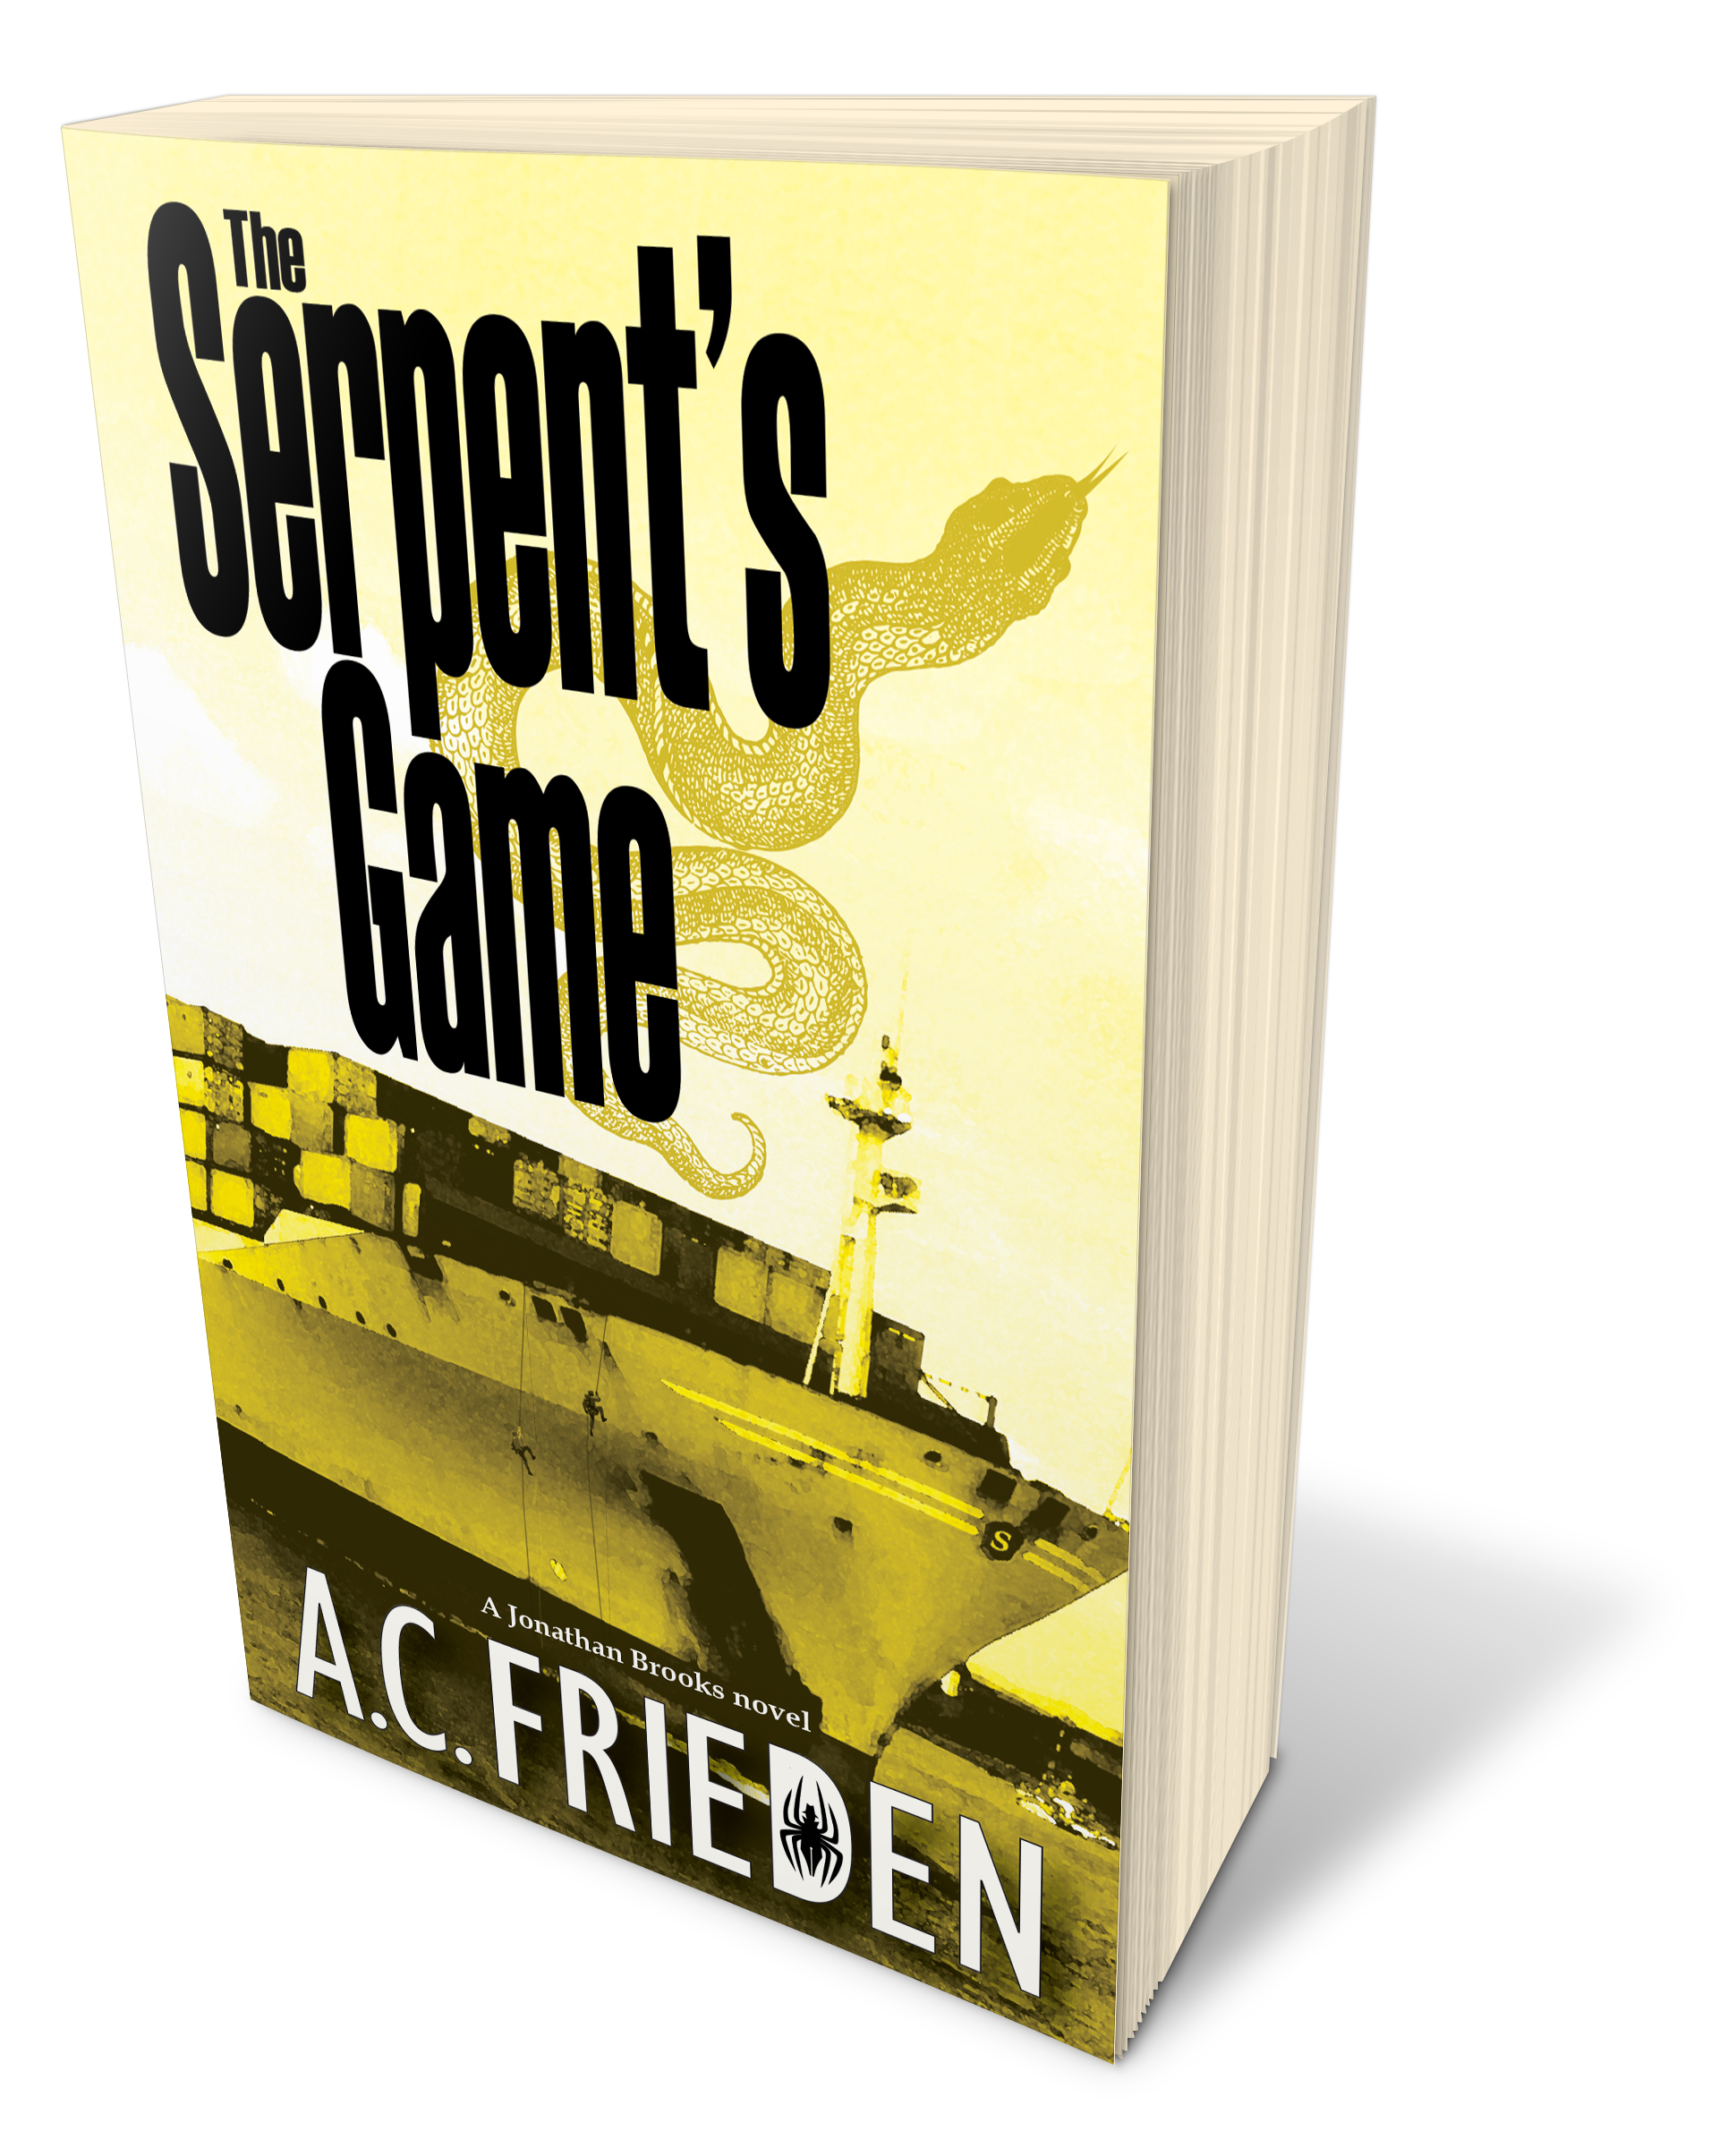 The Serpent's game